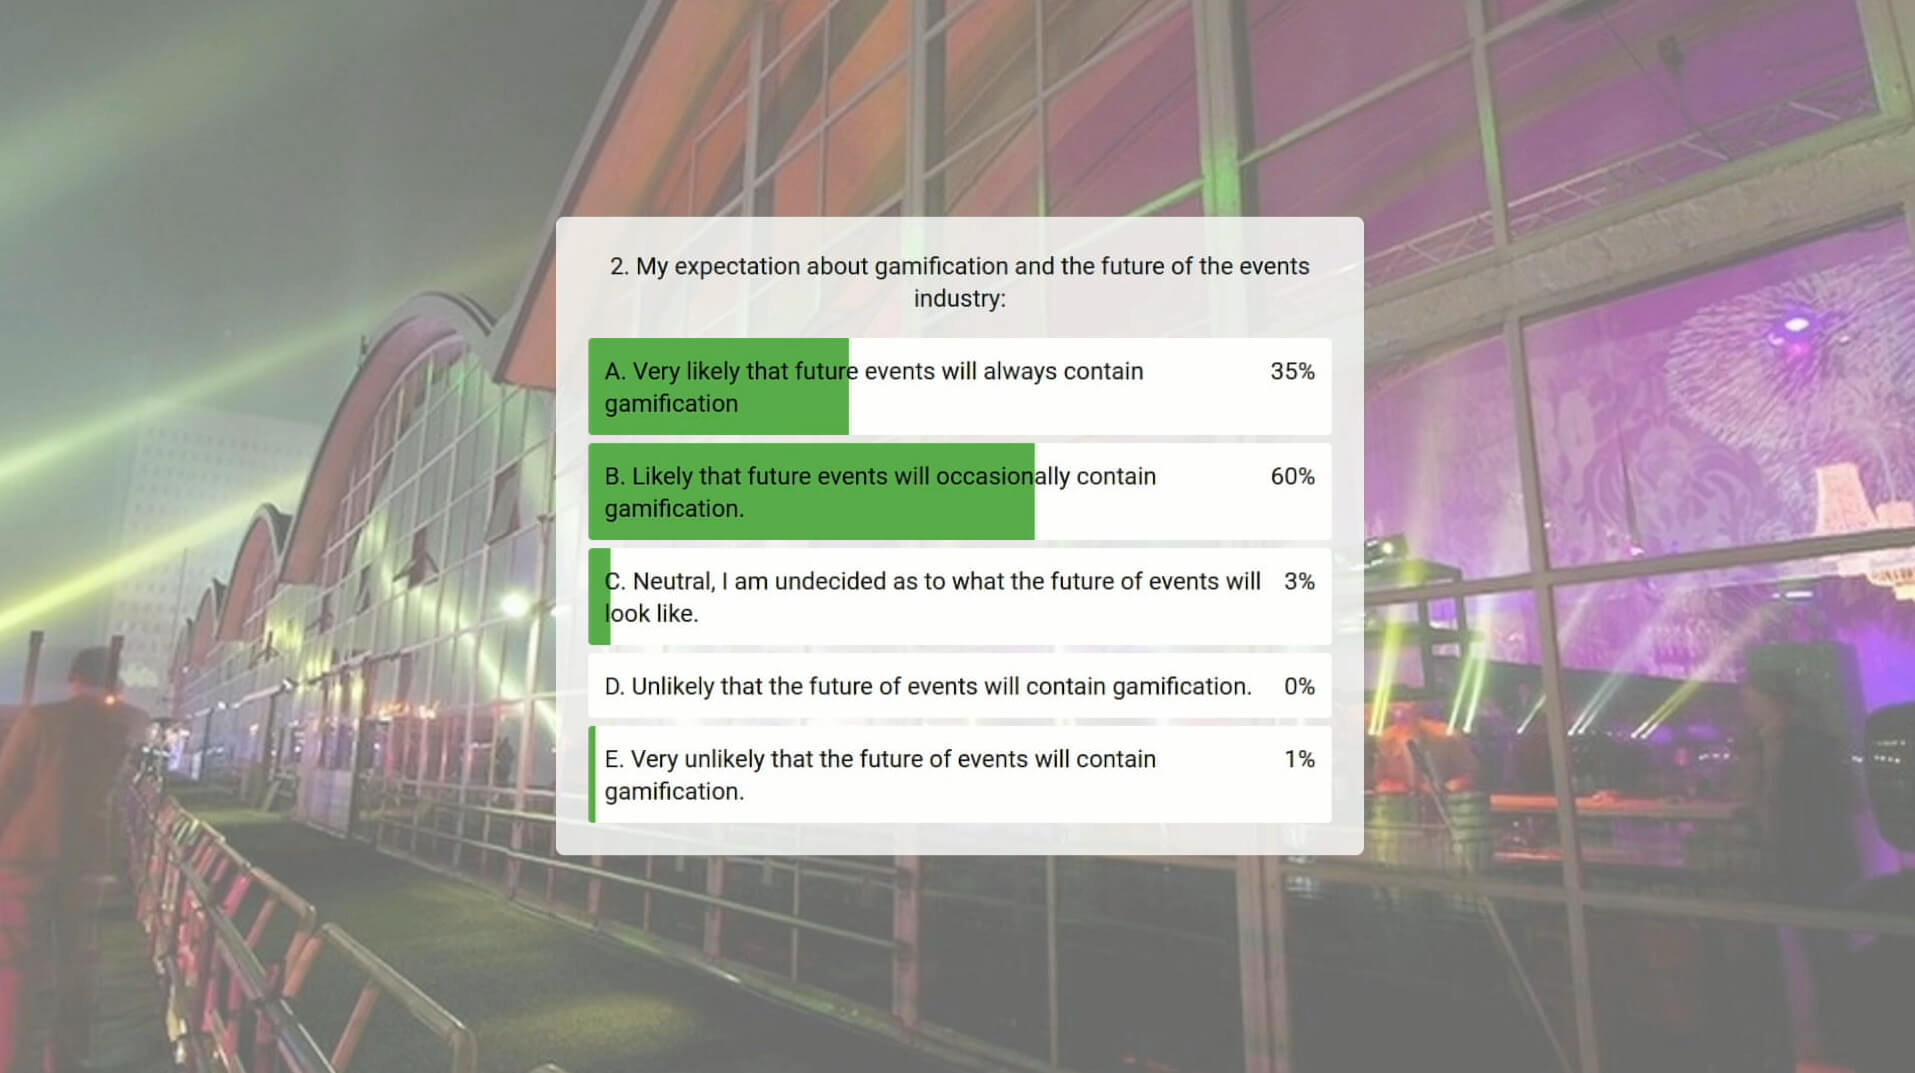 Live polling showed that most participants believe gamification will somehow play a part in future events.